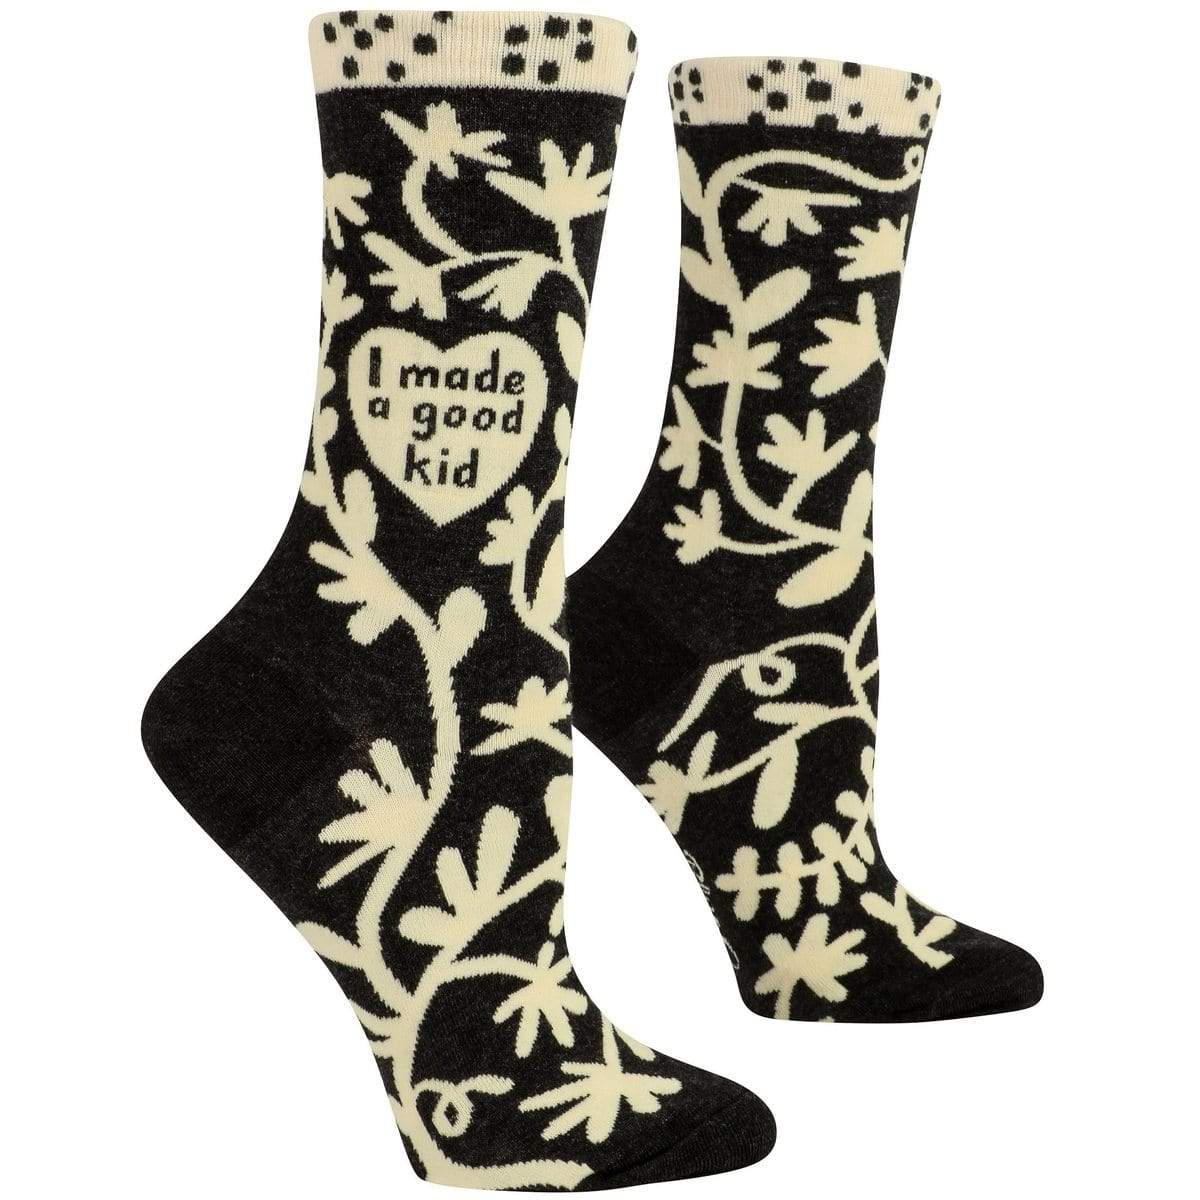 I Made A Good Kid Women's Crew Sock Black